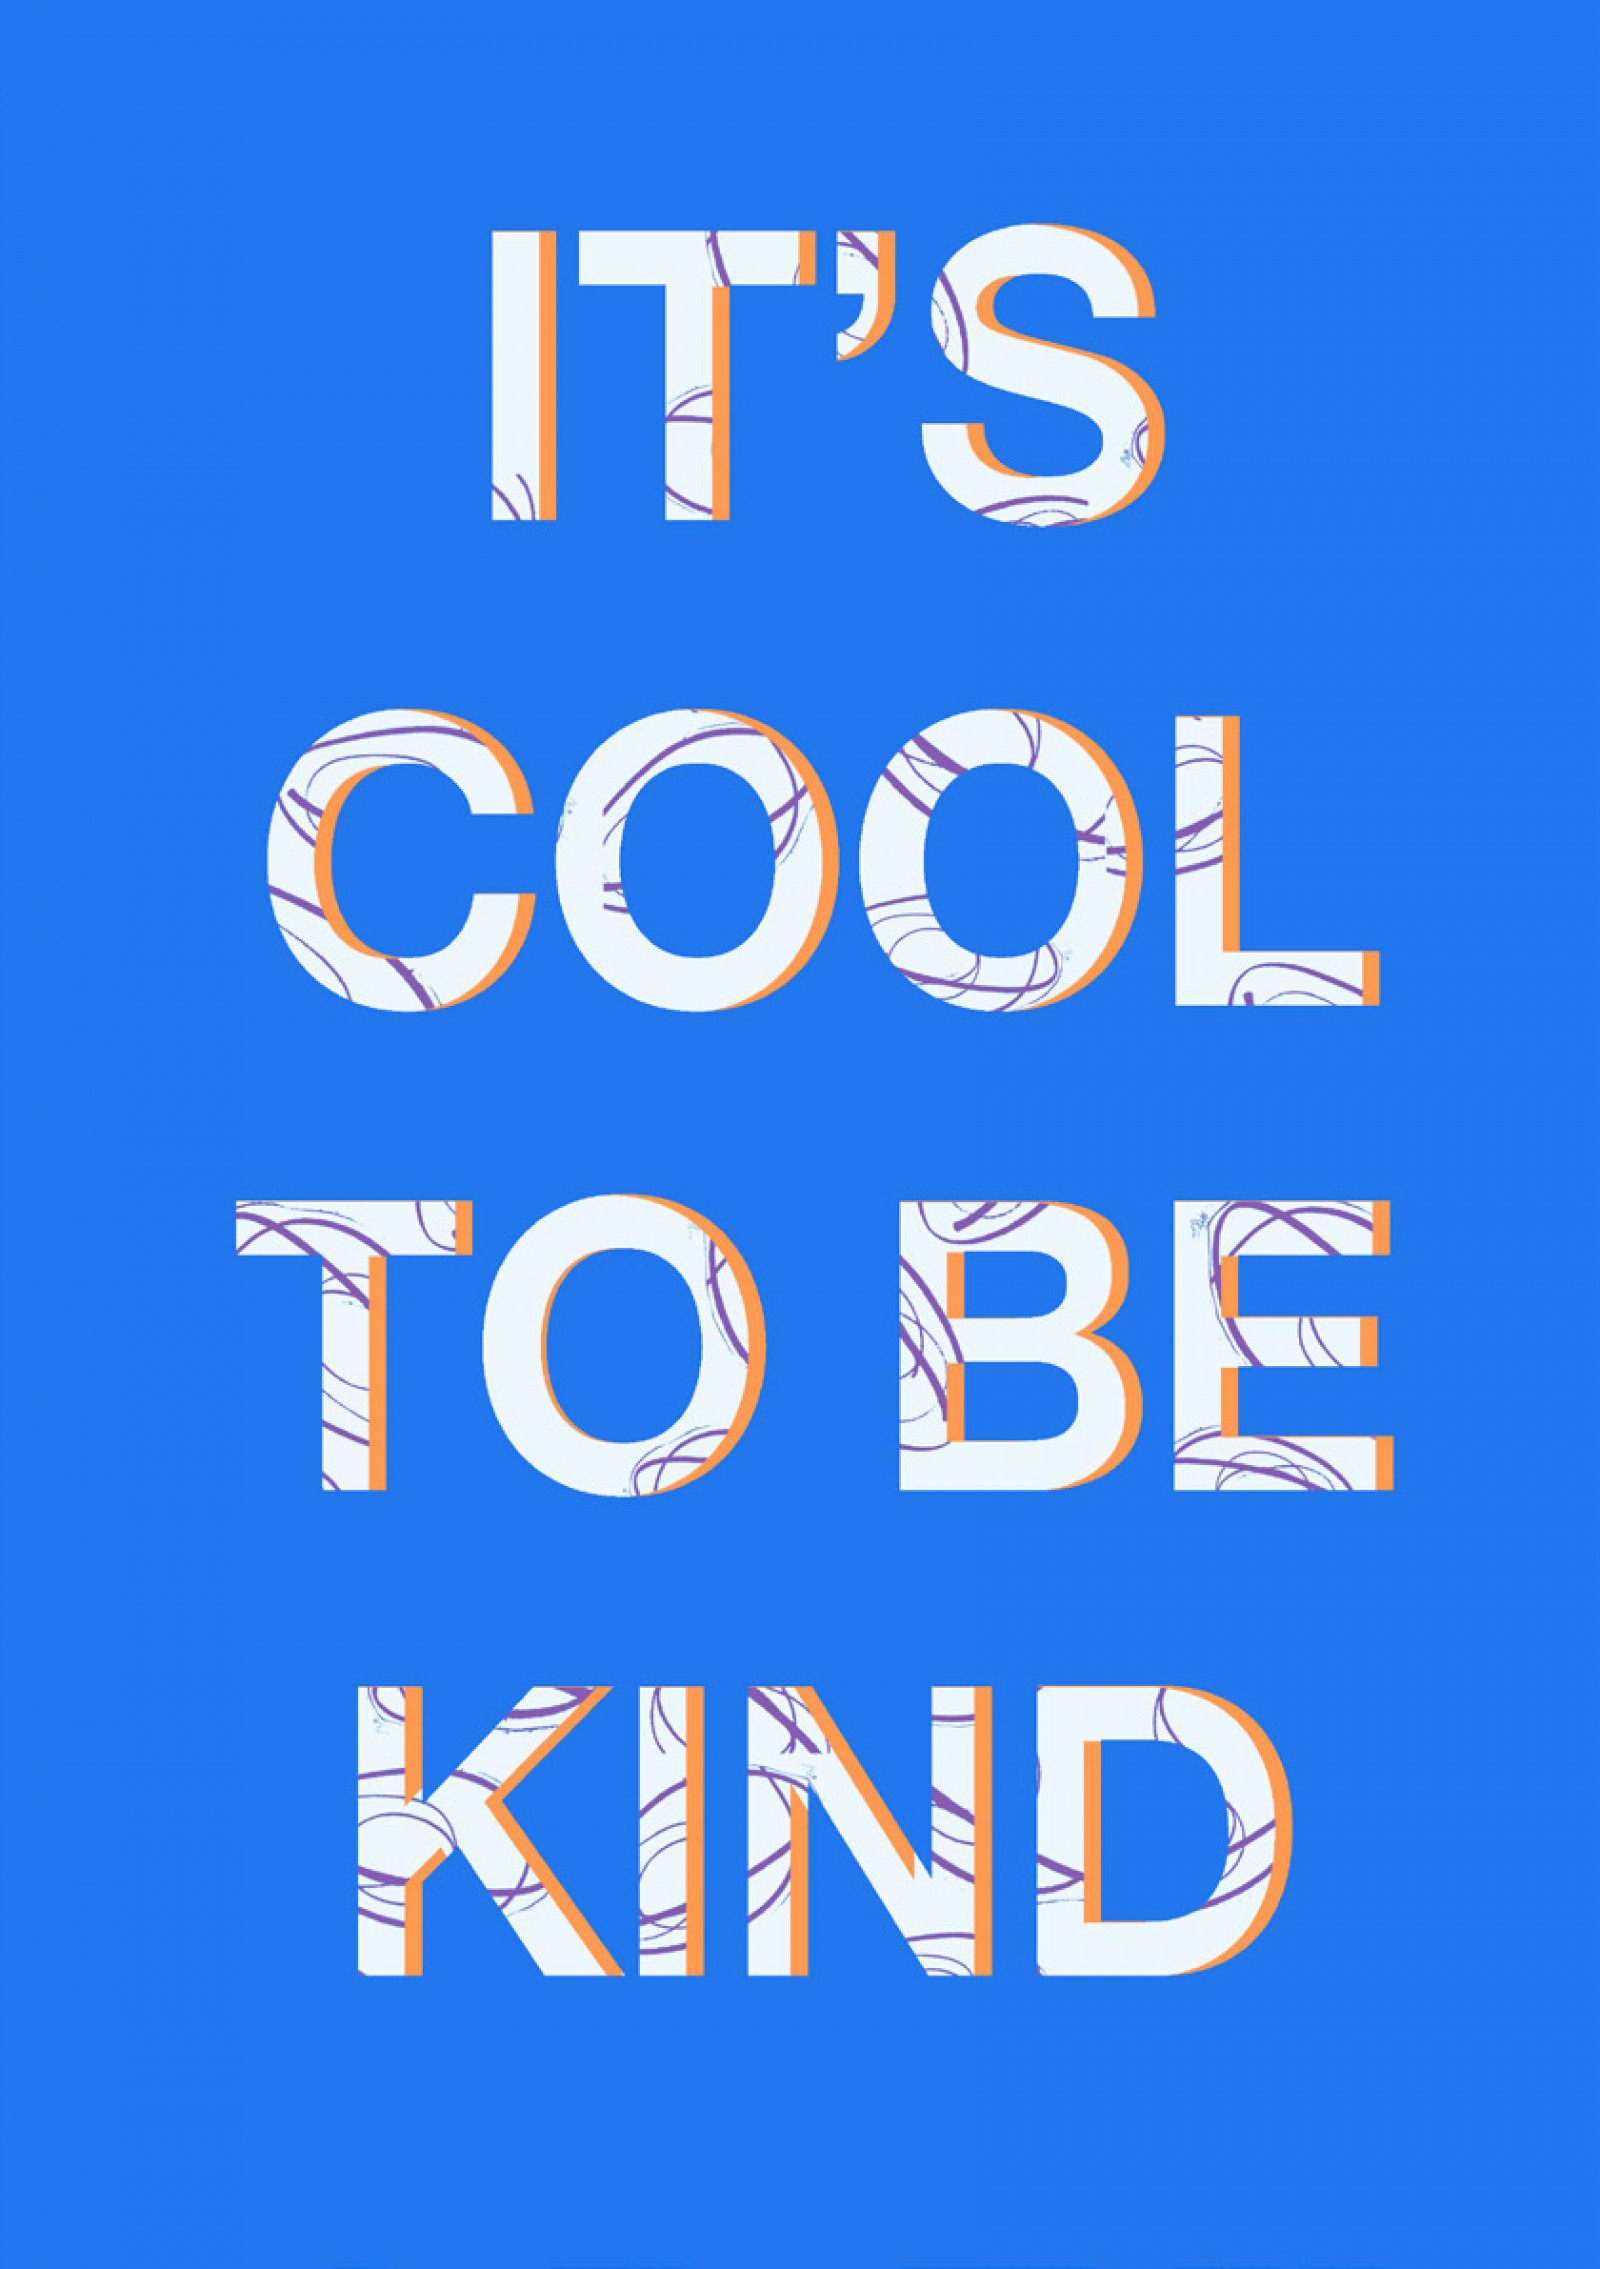 The words: 'It's Cool To Be Kind' are written in white capitalised text on a blue background